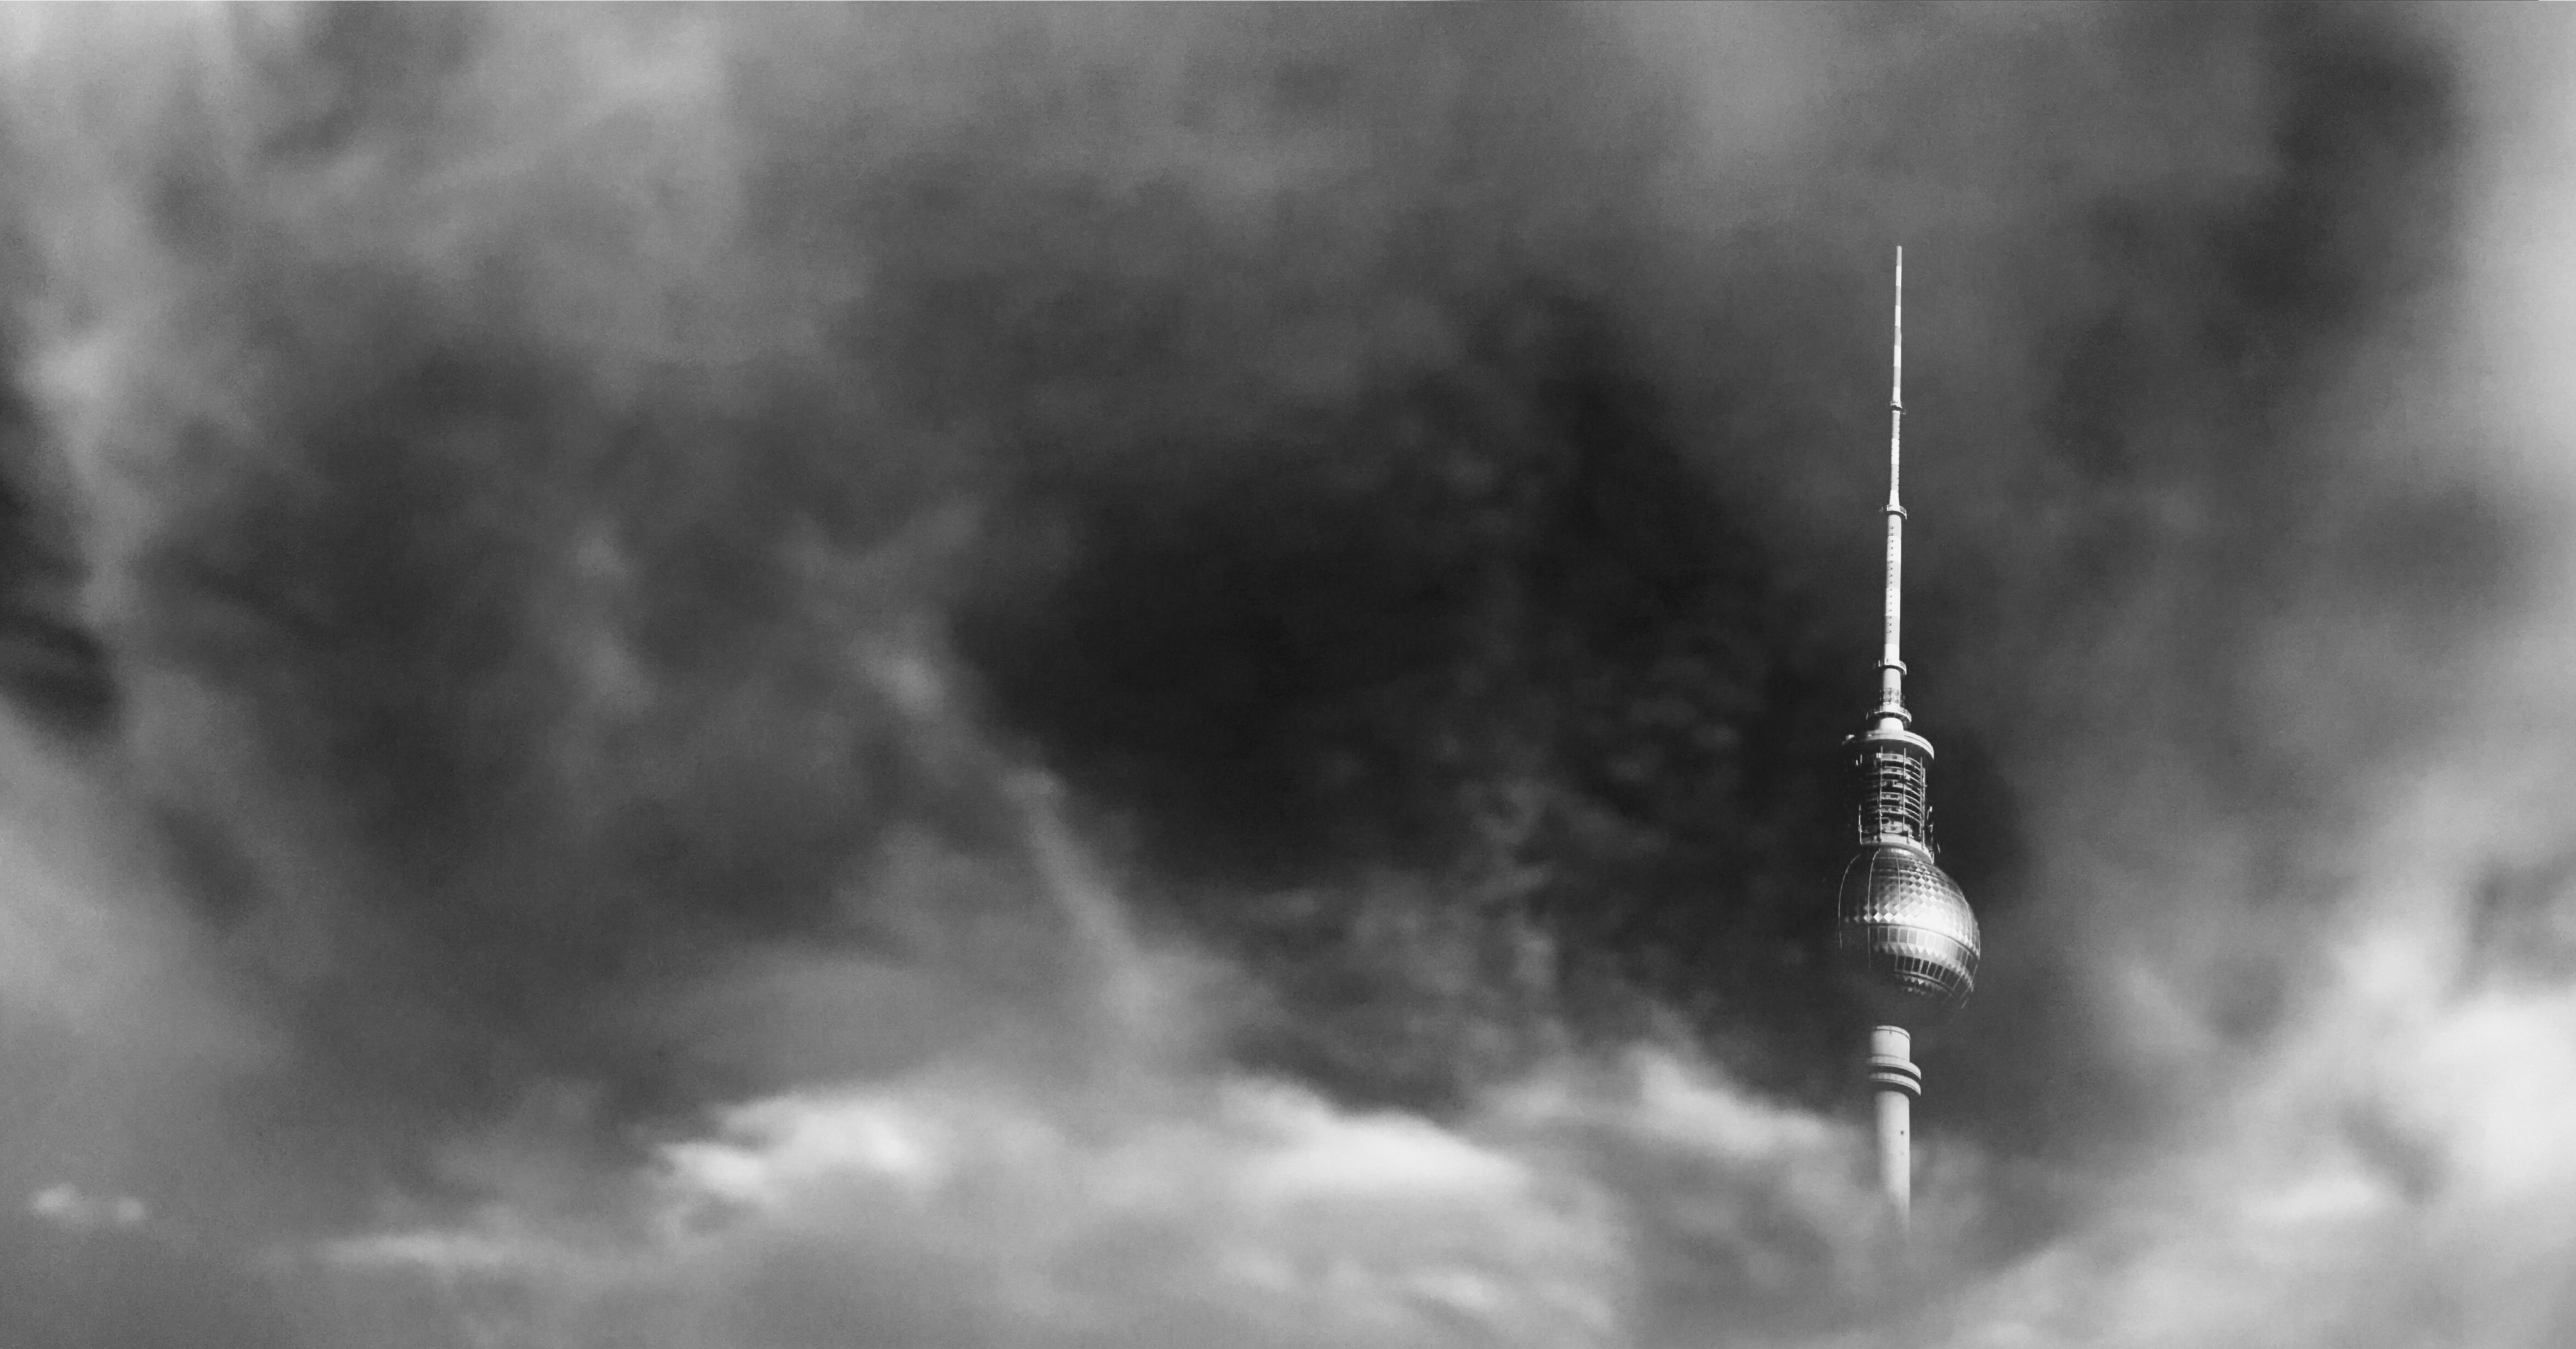 The Fernsehturm tower in Berlin shrouded in gray clouds